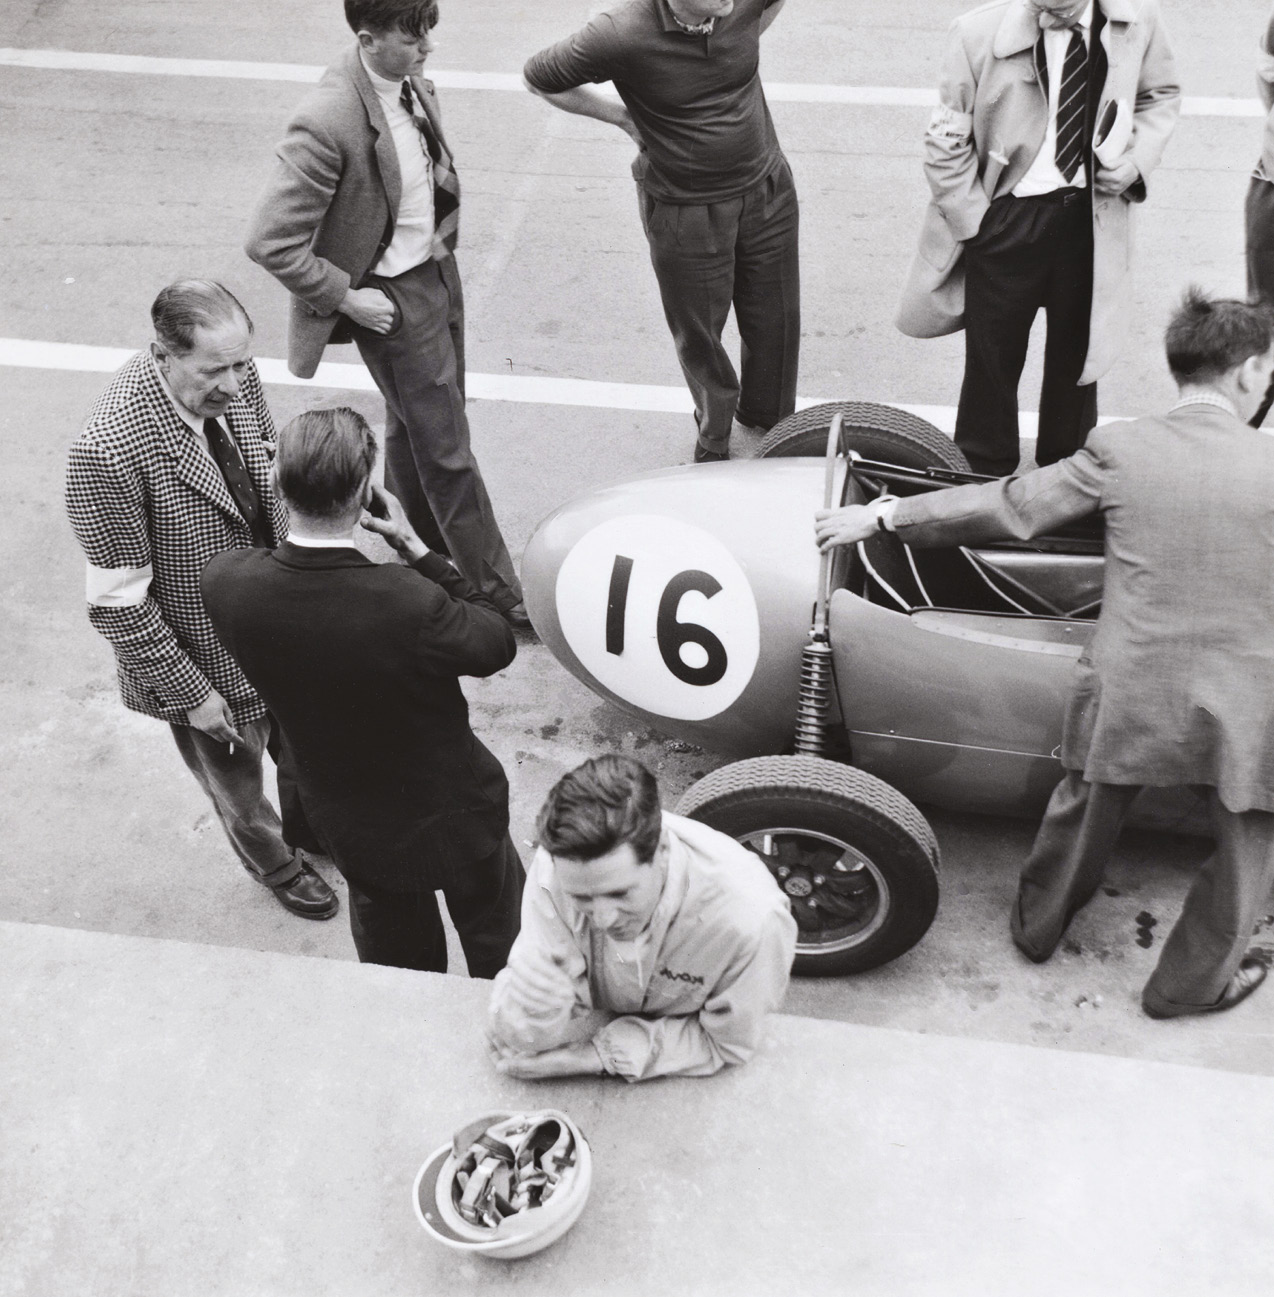 Motorcycle racing star Geoff Duke contested the Formula Junior support race in a Gemini.